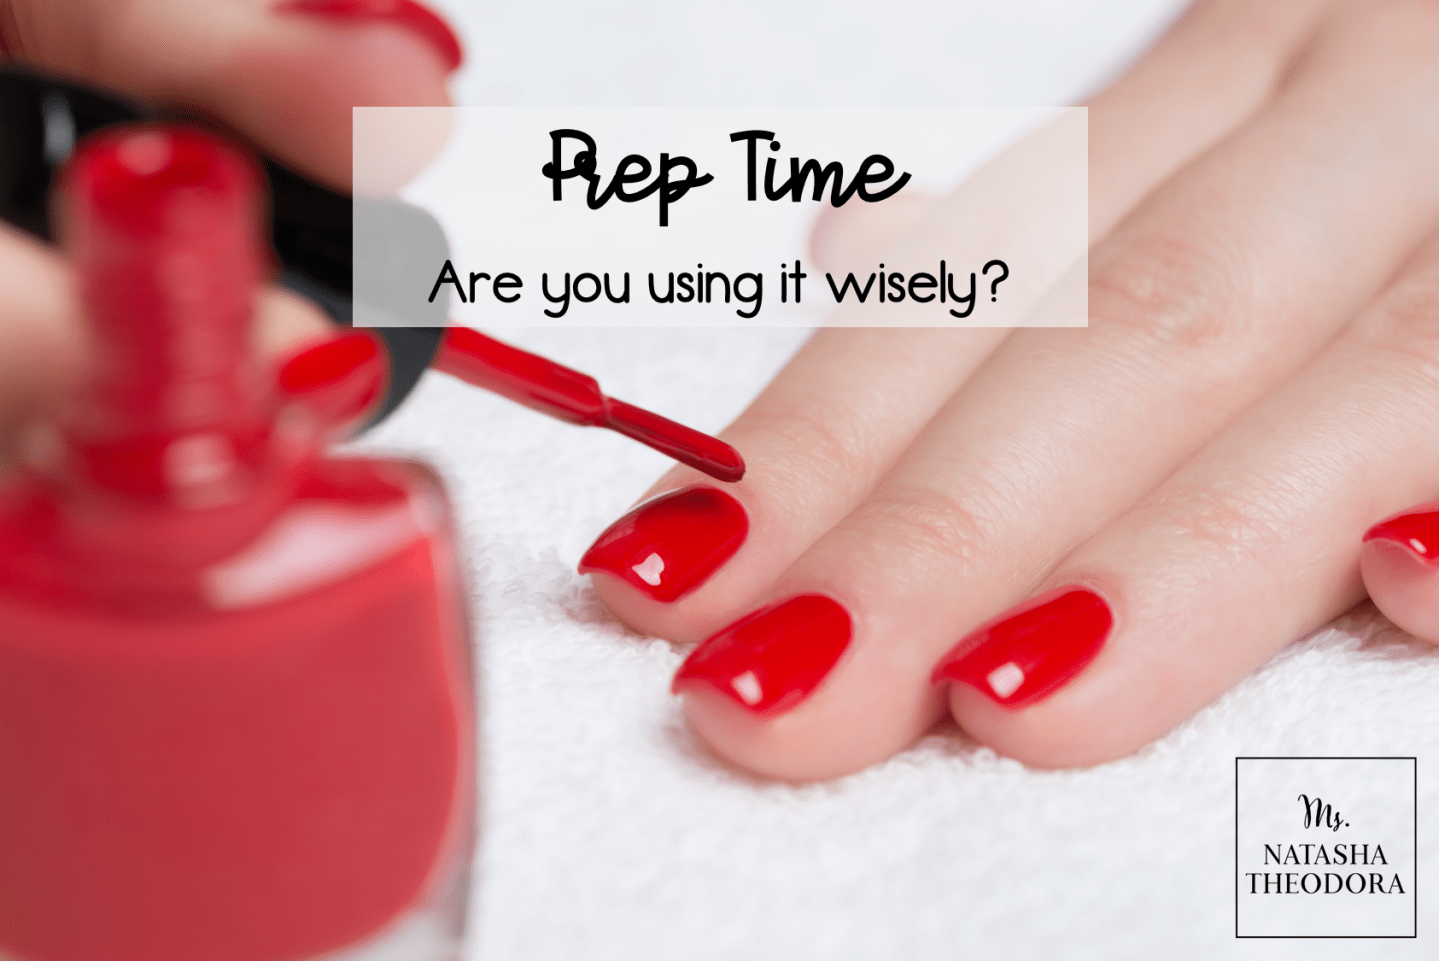 Prep Time: Are you using it wisely?